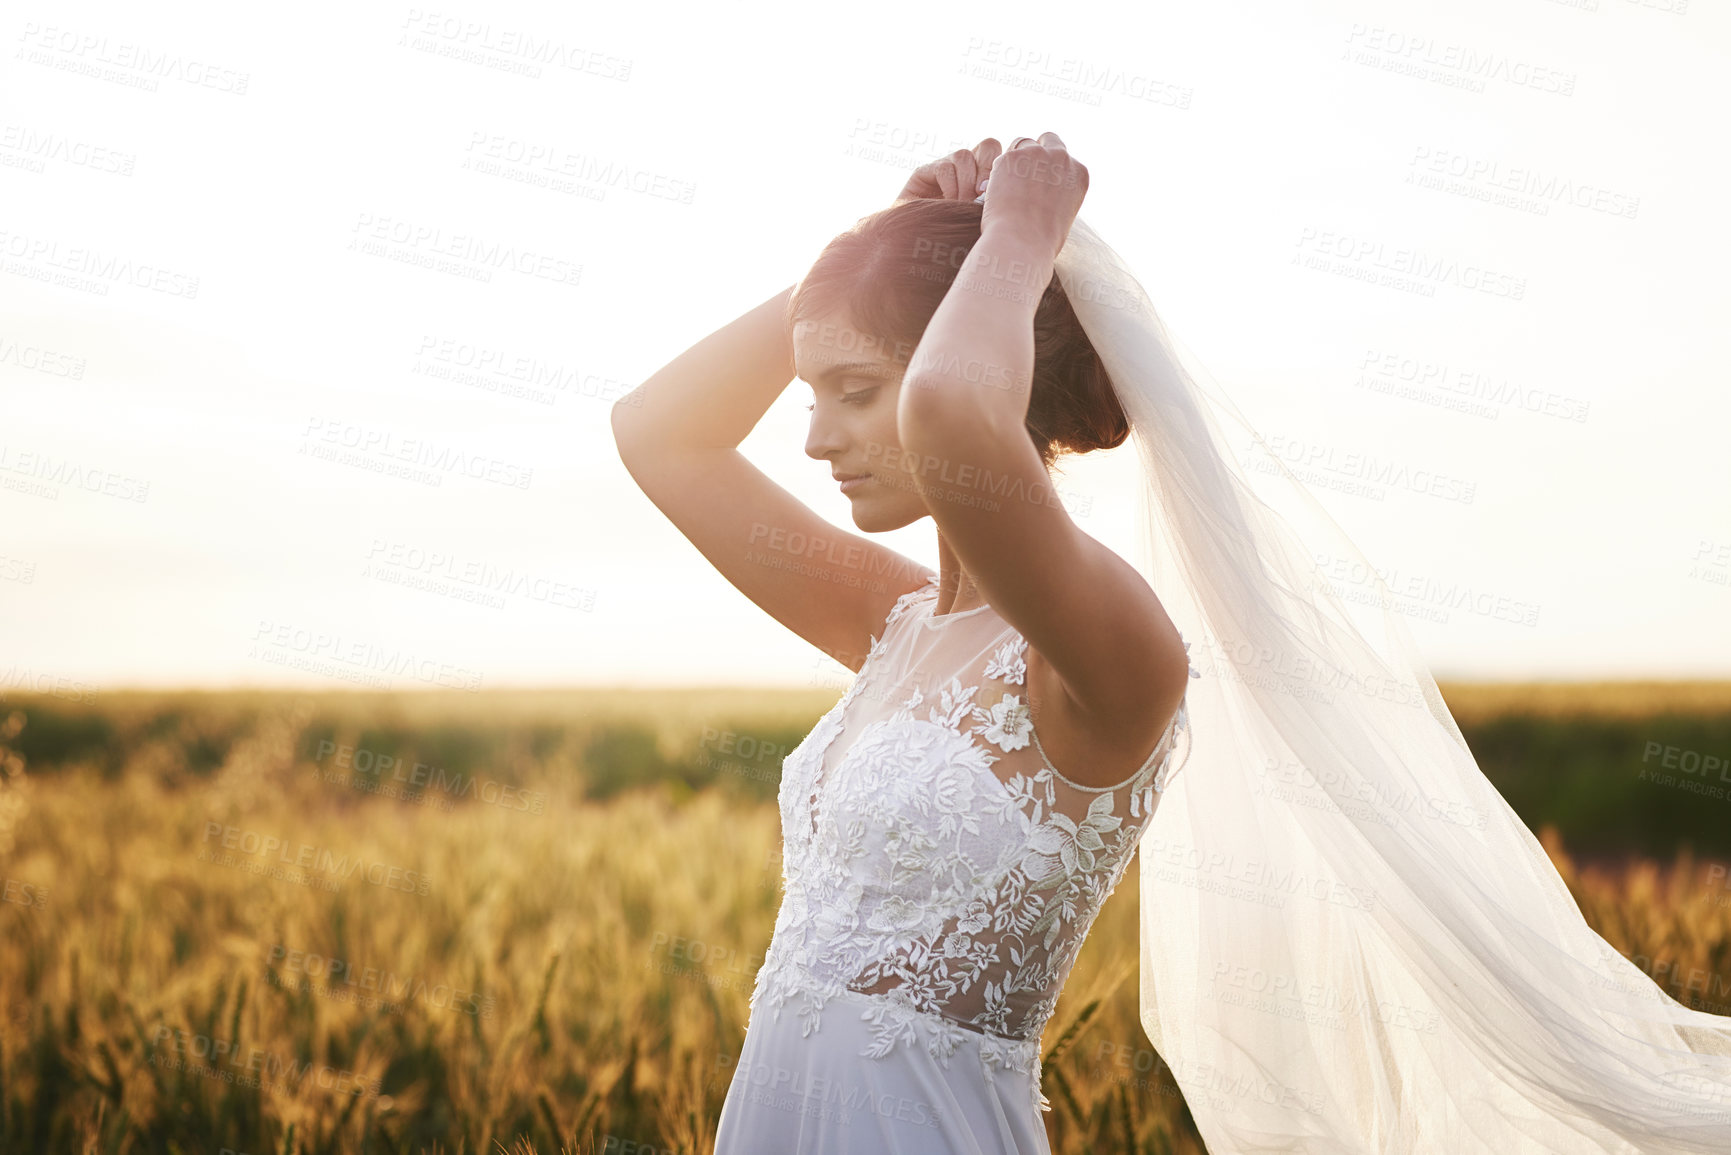 Buy stock photo Shot of a beautiful young bride standing in a field on her wedding day